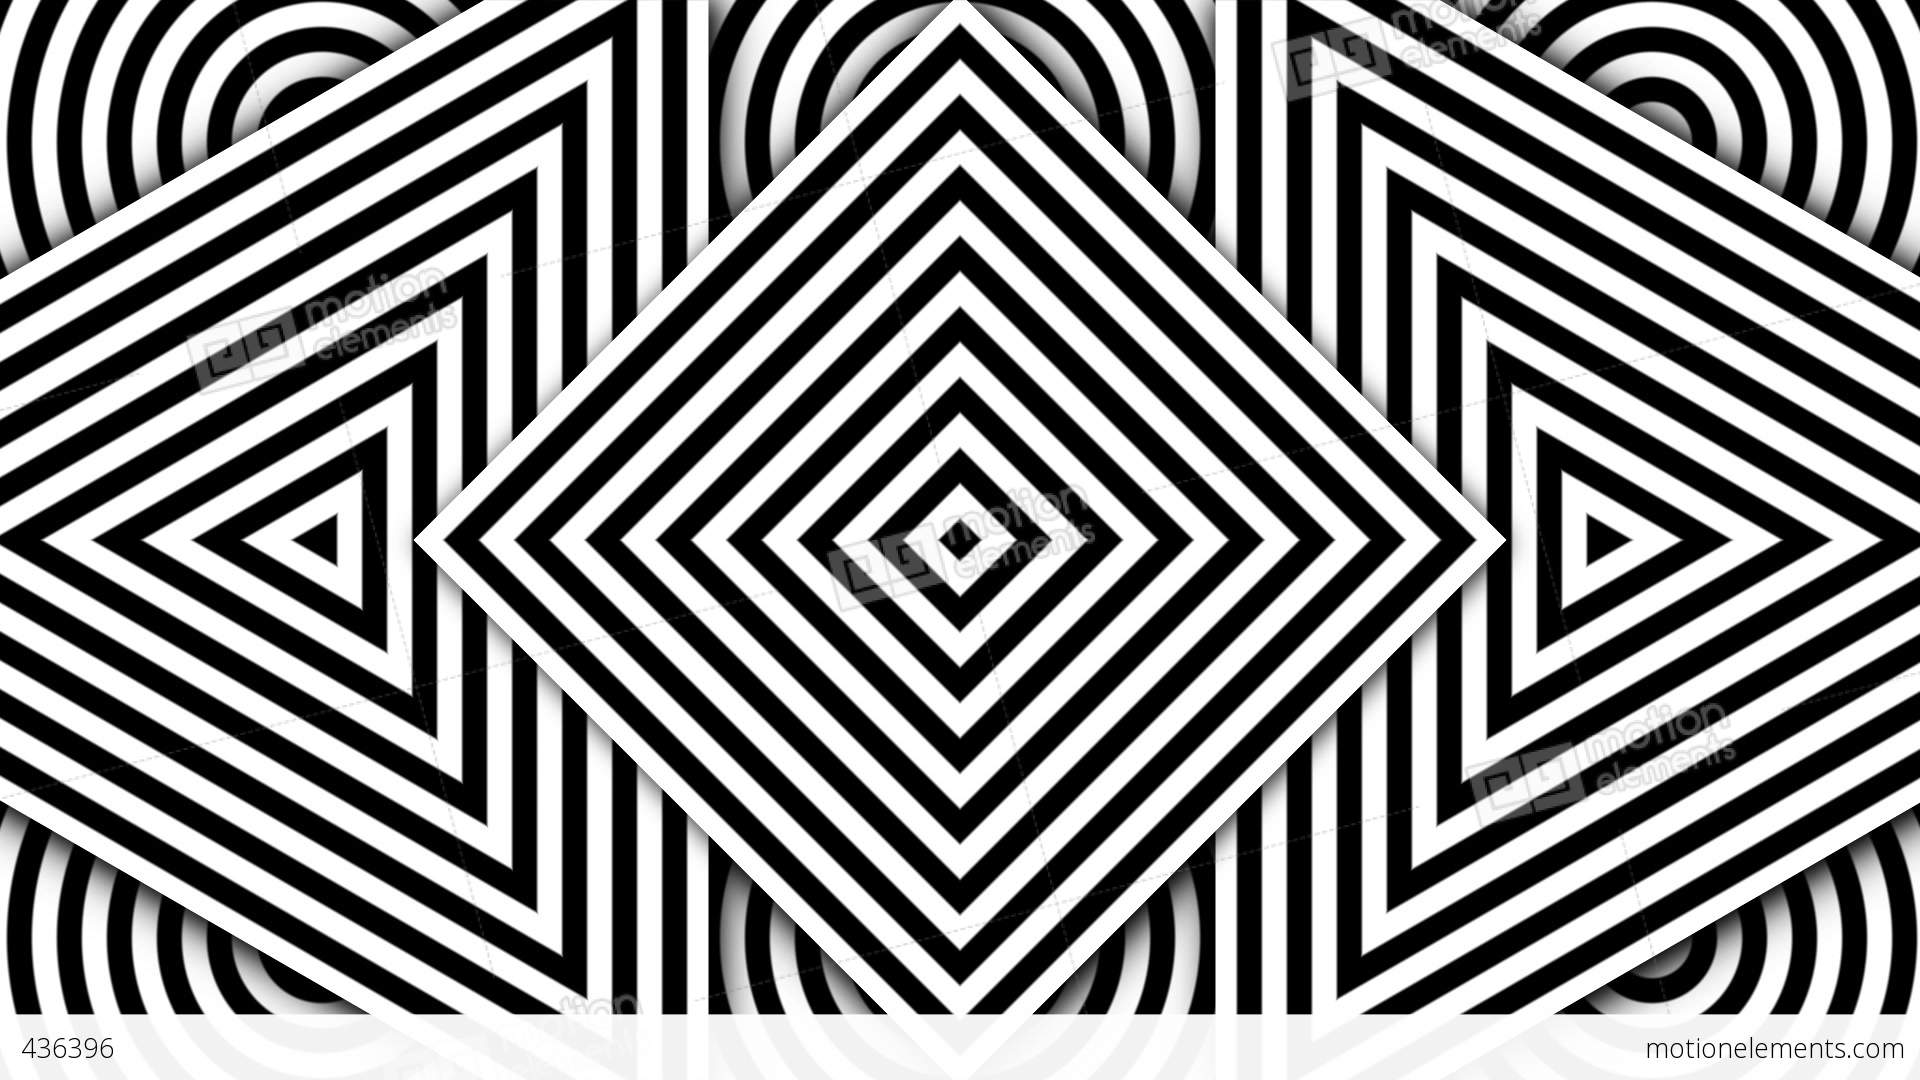 Hypnotic Black And White Shapes Stock Animation | 436396